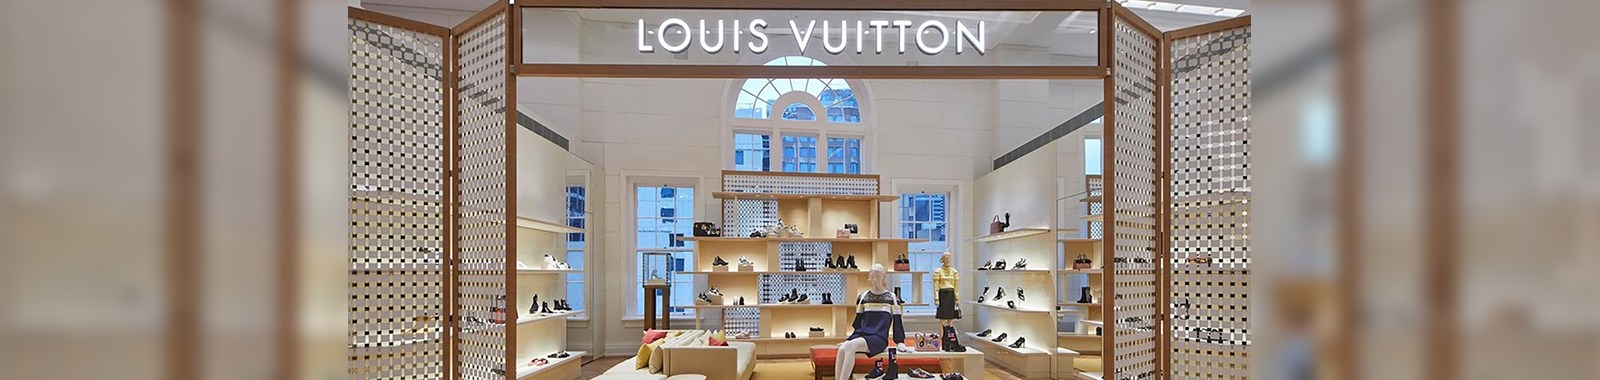 louis-vuitton-1307_LVNow_DJ_Pop_Up_Sydney_AU_DI3-eye